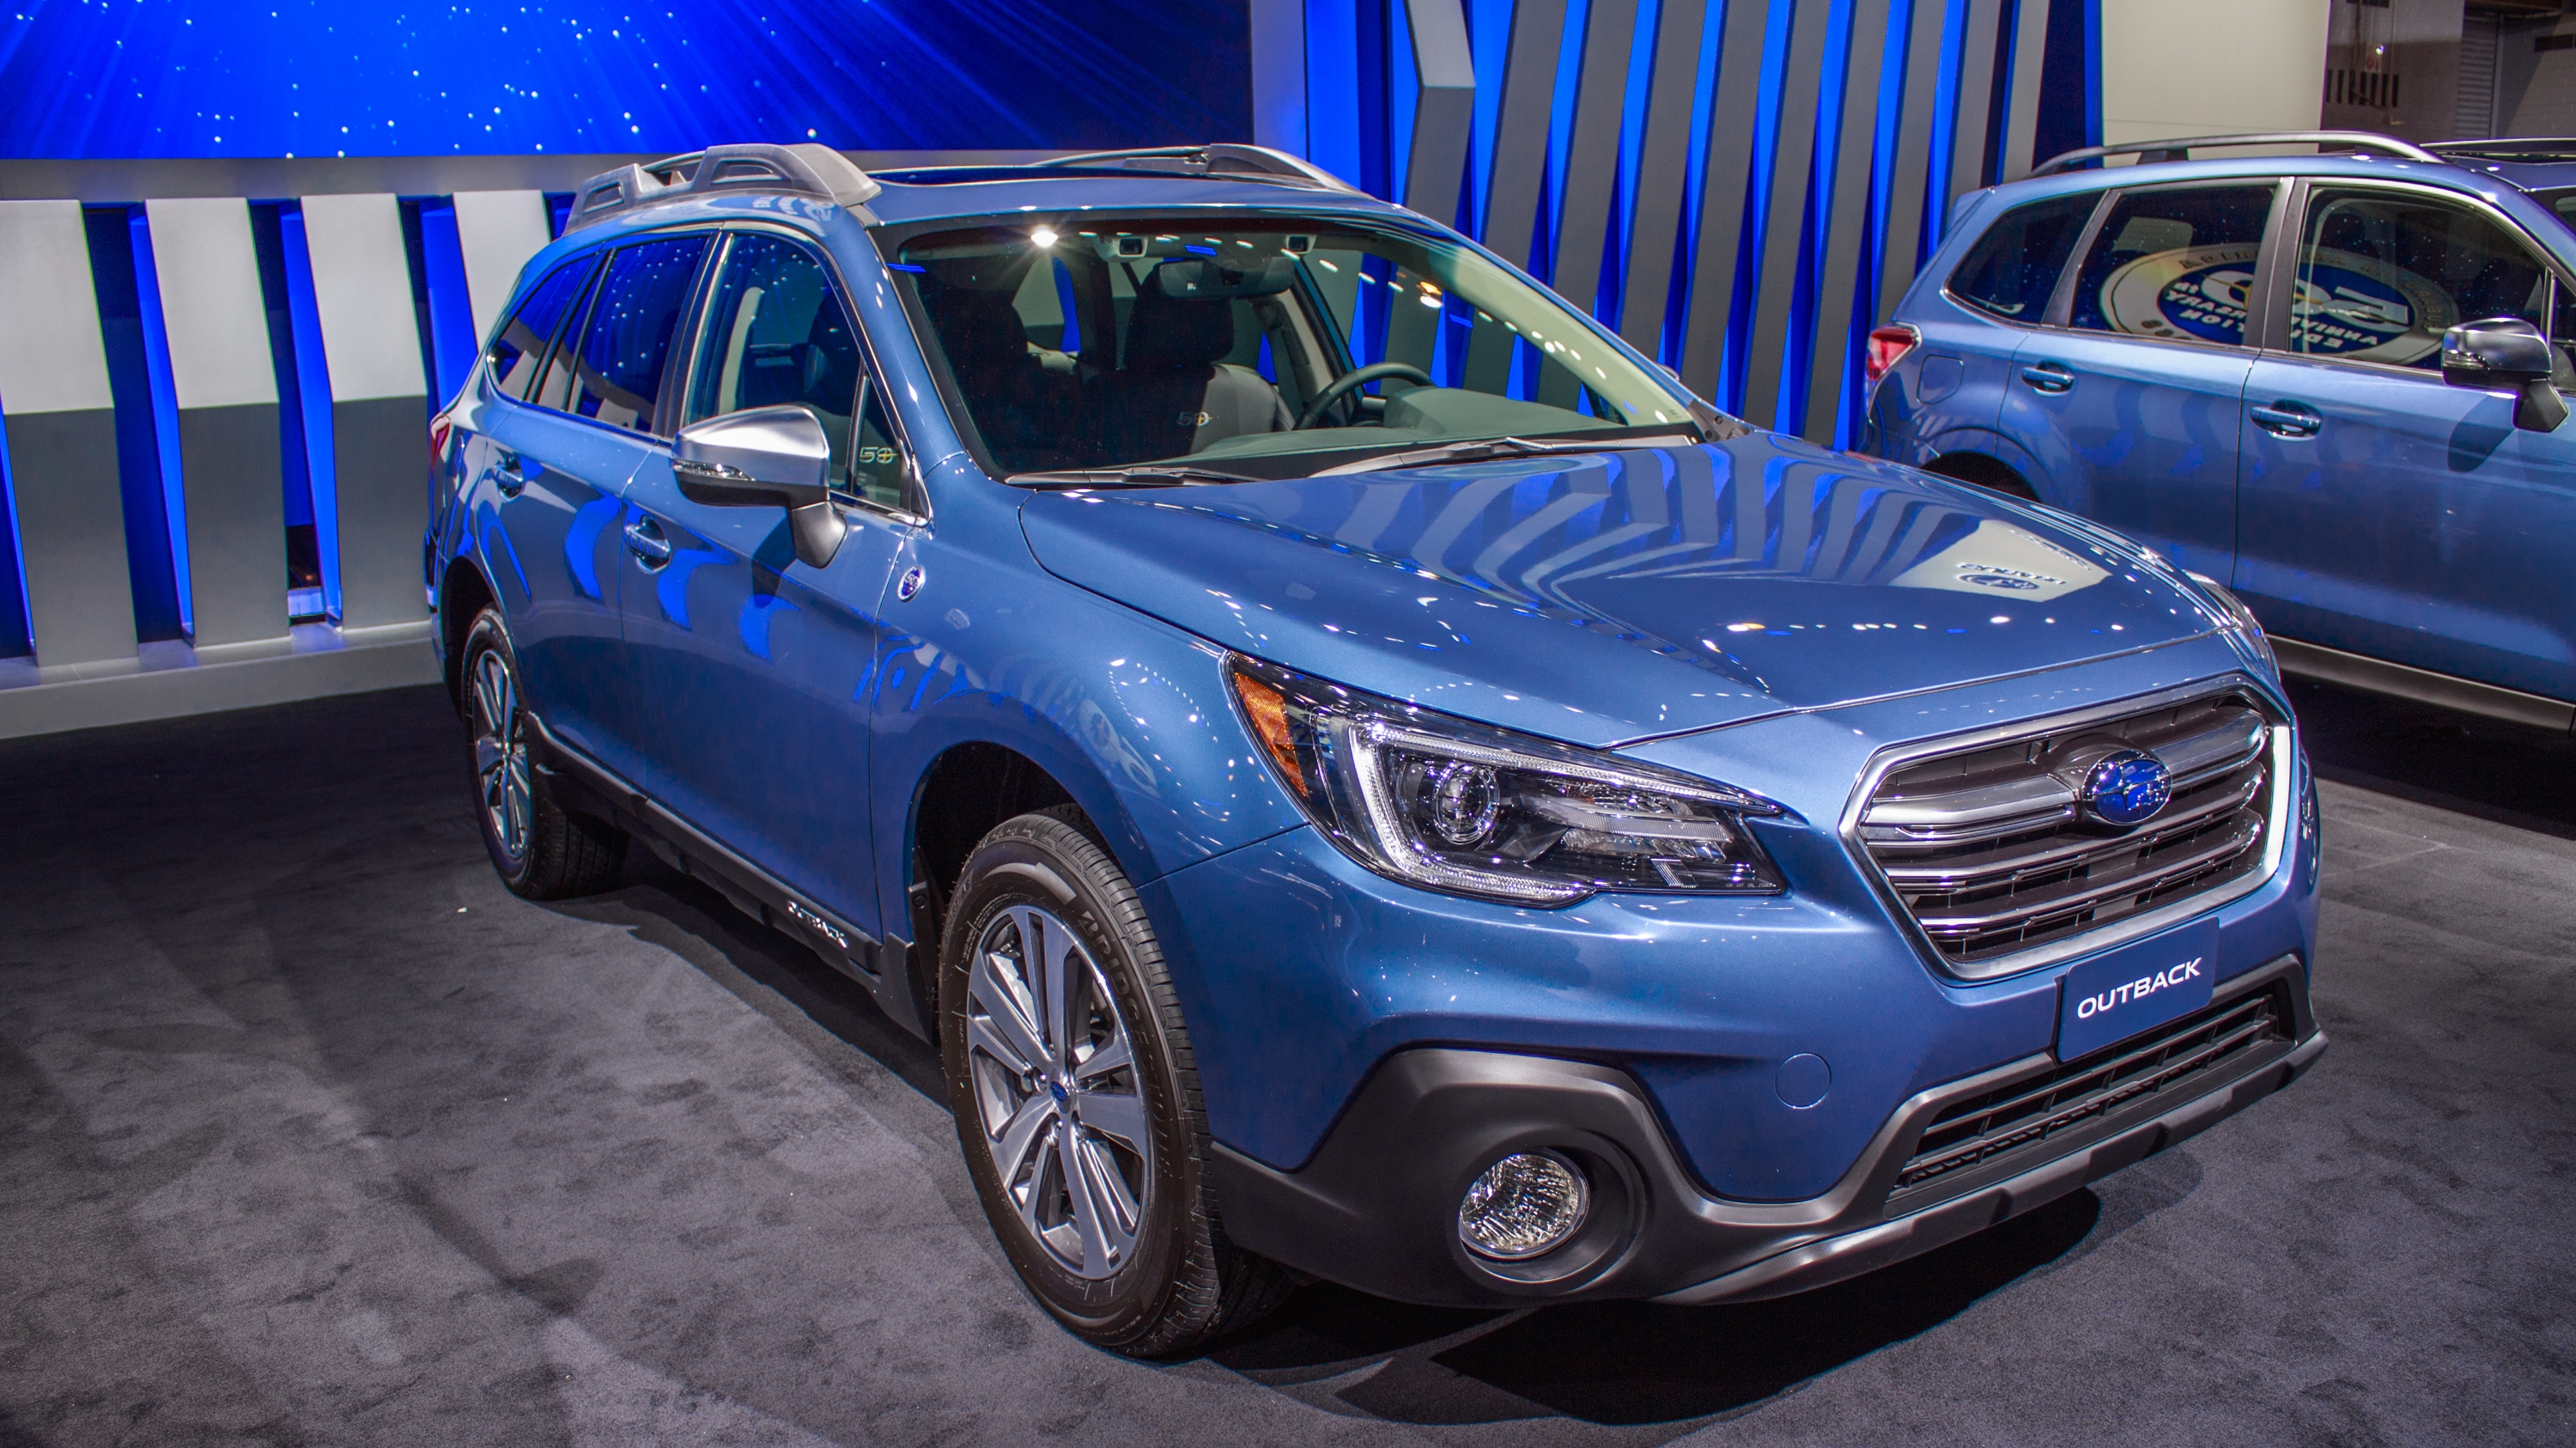 Subaru Outback Off Road >> 2018 Subaru Outback 50th Anniversary Edition Review - Top Speed